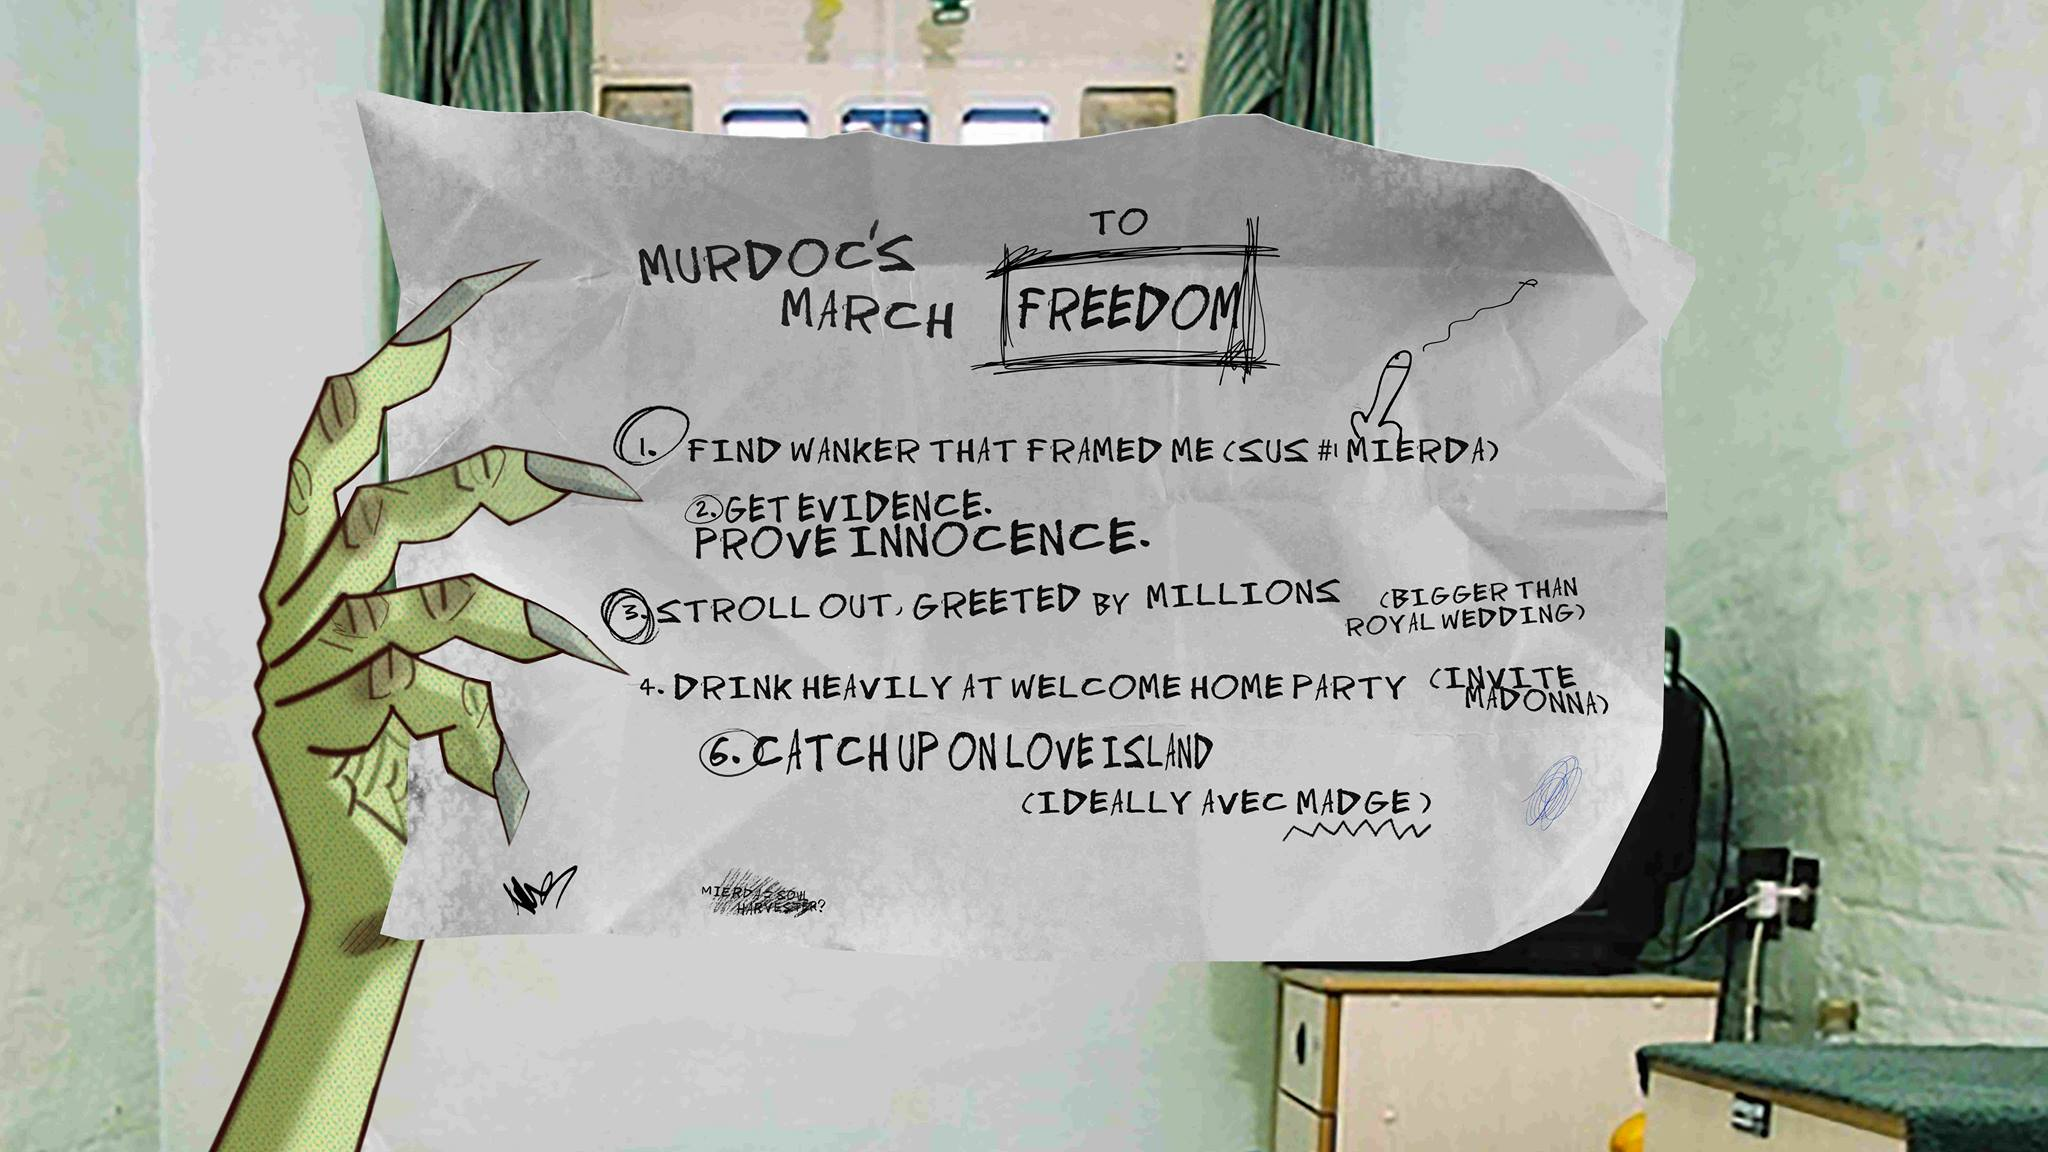 Murdoc's March to Freedom.jpg